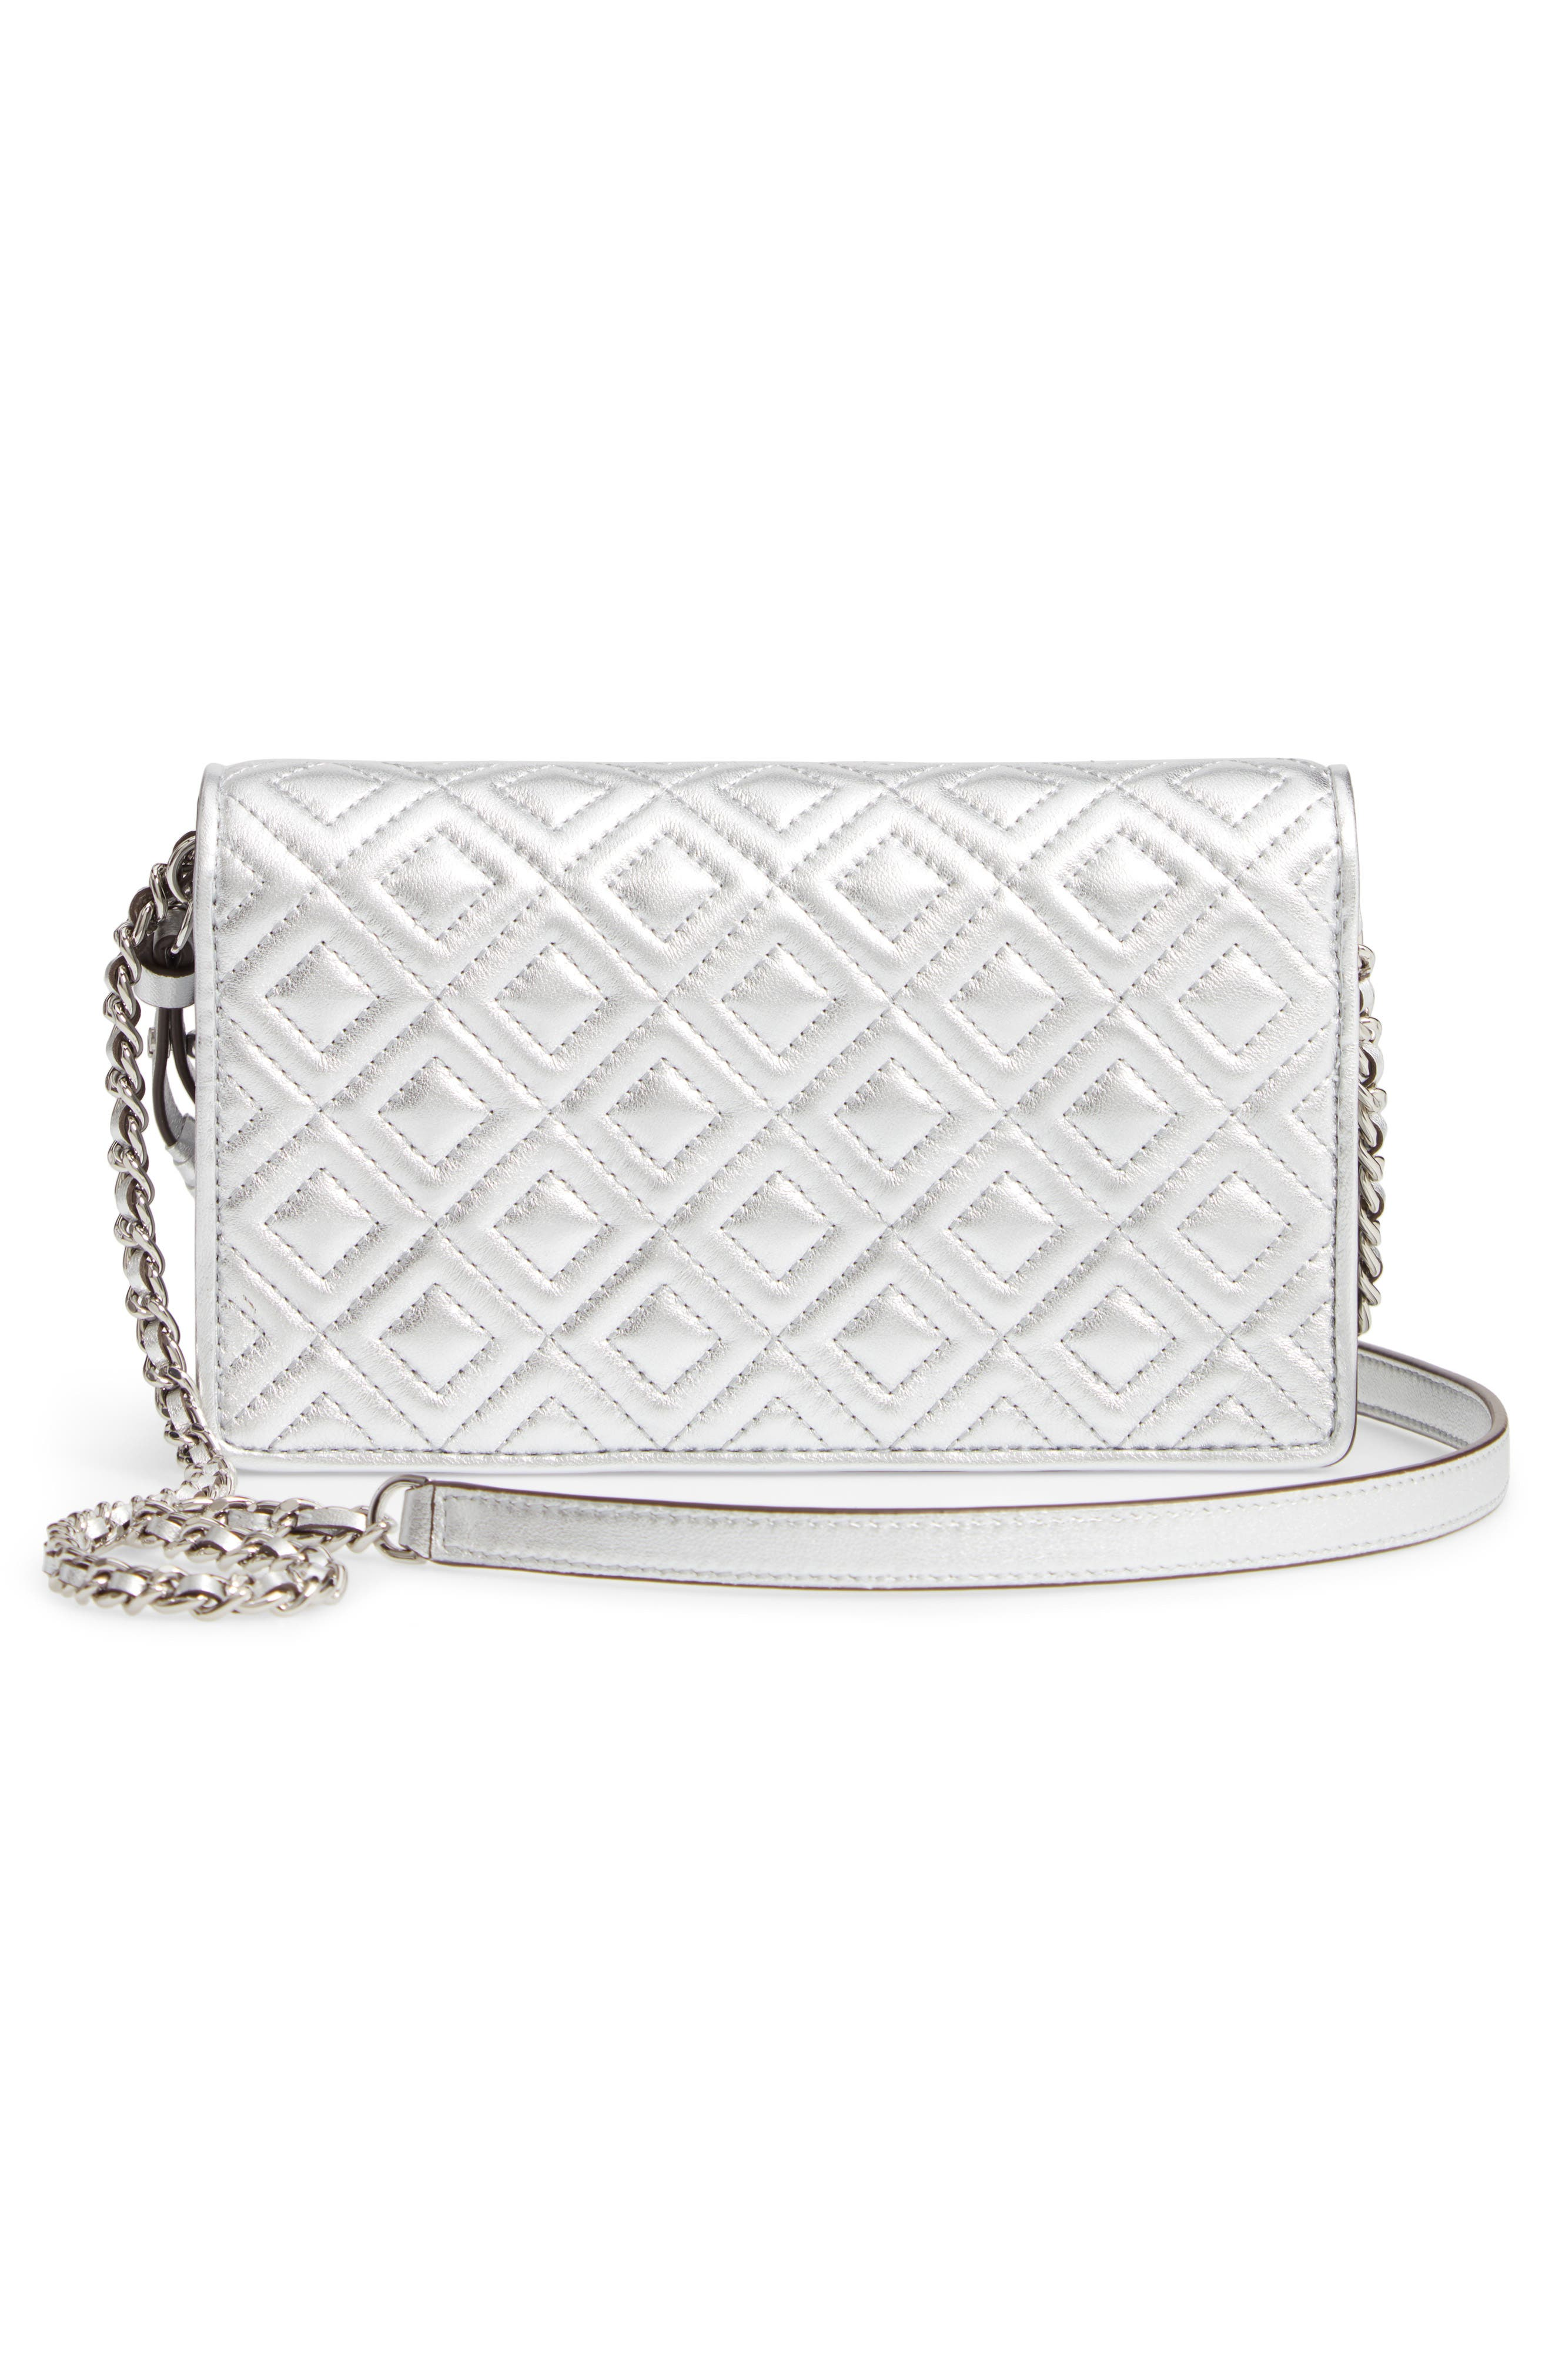 TORY BURCH, Fleming Quilted Metallic Leather Continental Wallet, Alternate thumbnail 3, color, 040